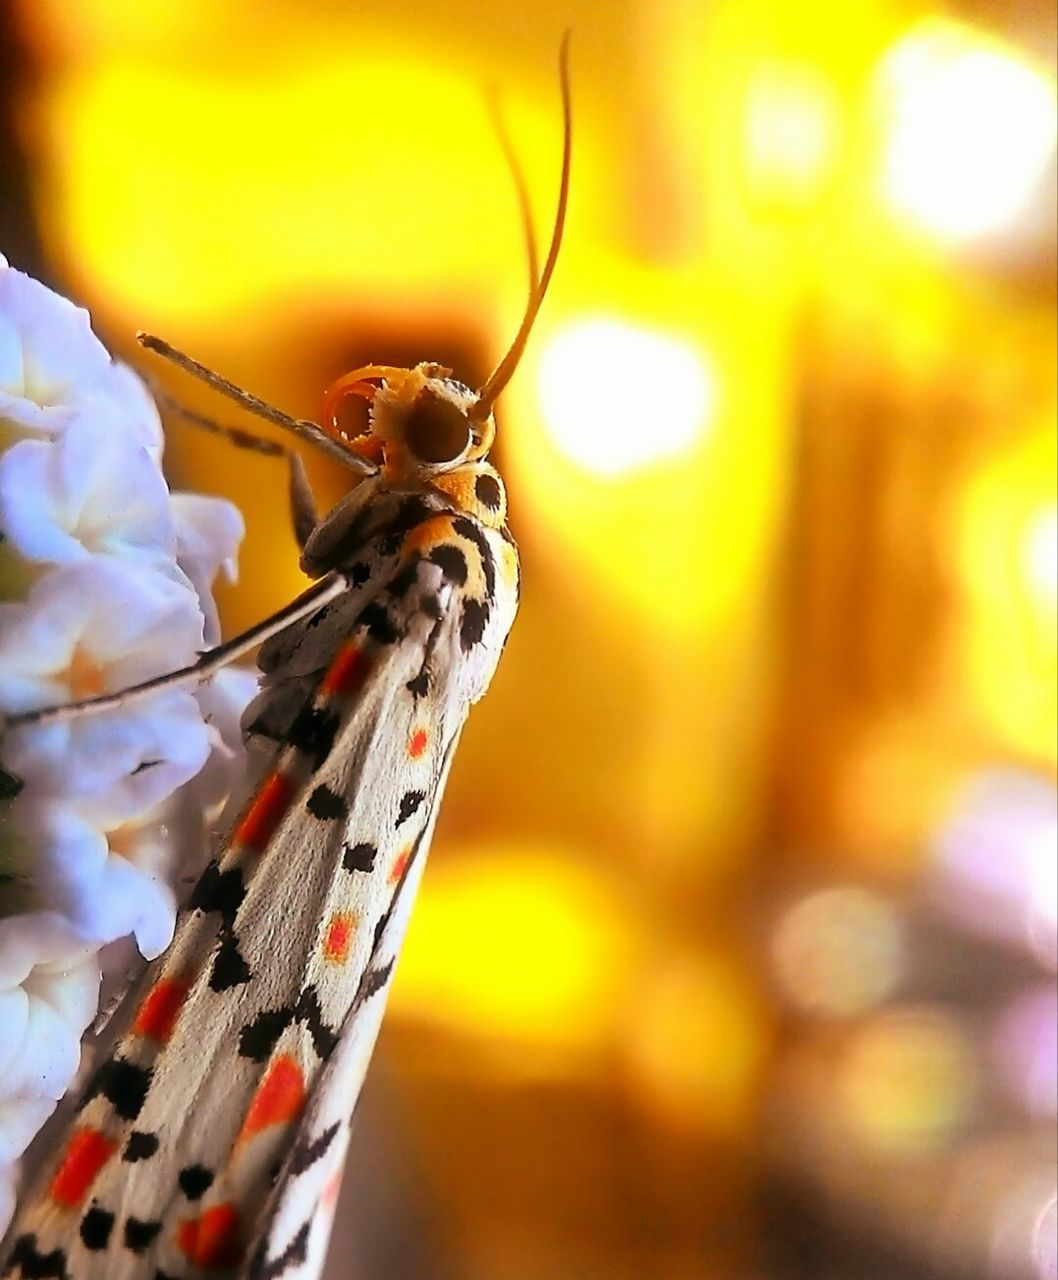 insect, close-up, one animal, animal themes, animals in the wild, focus on foreground, no people, day, outdoors, nature